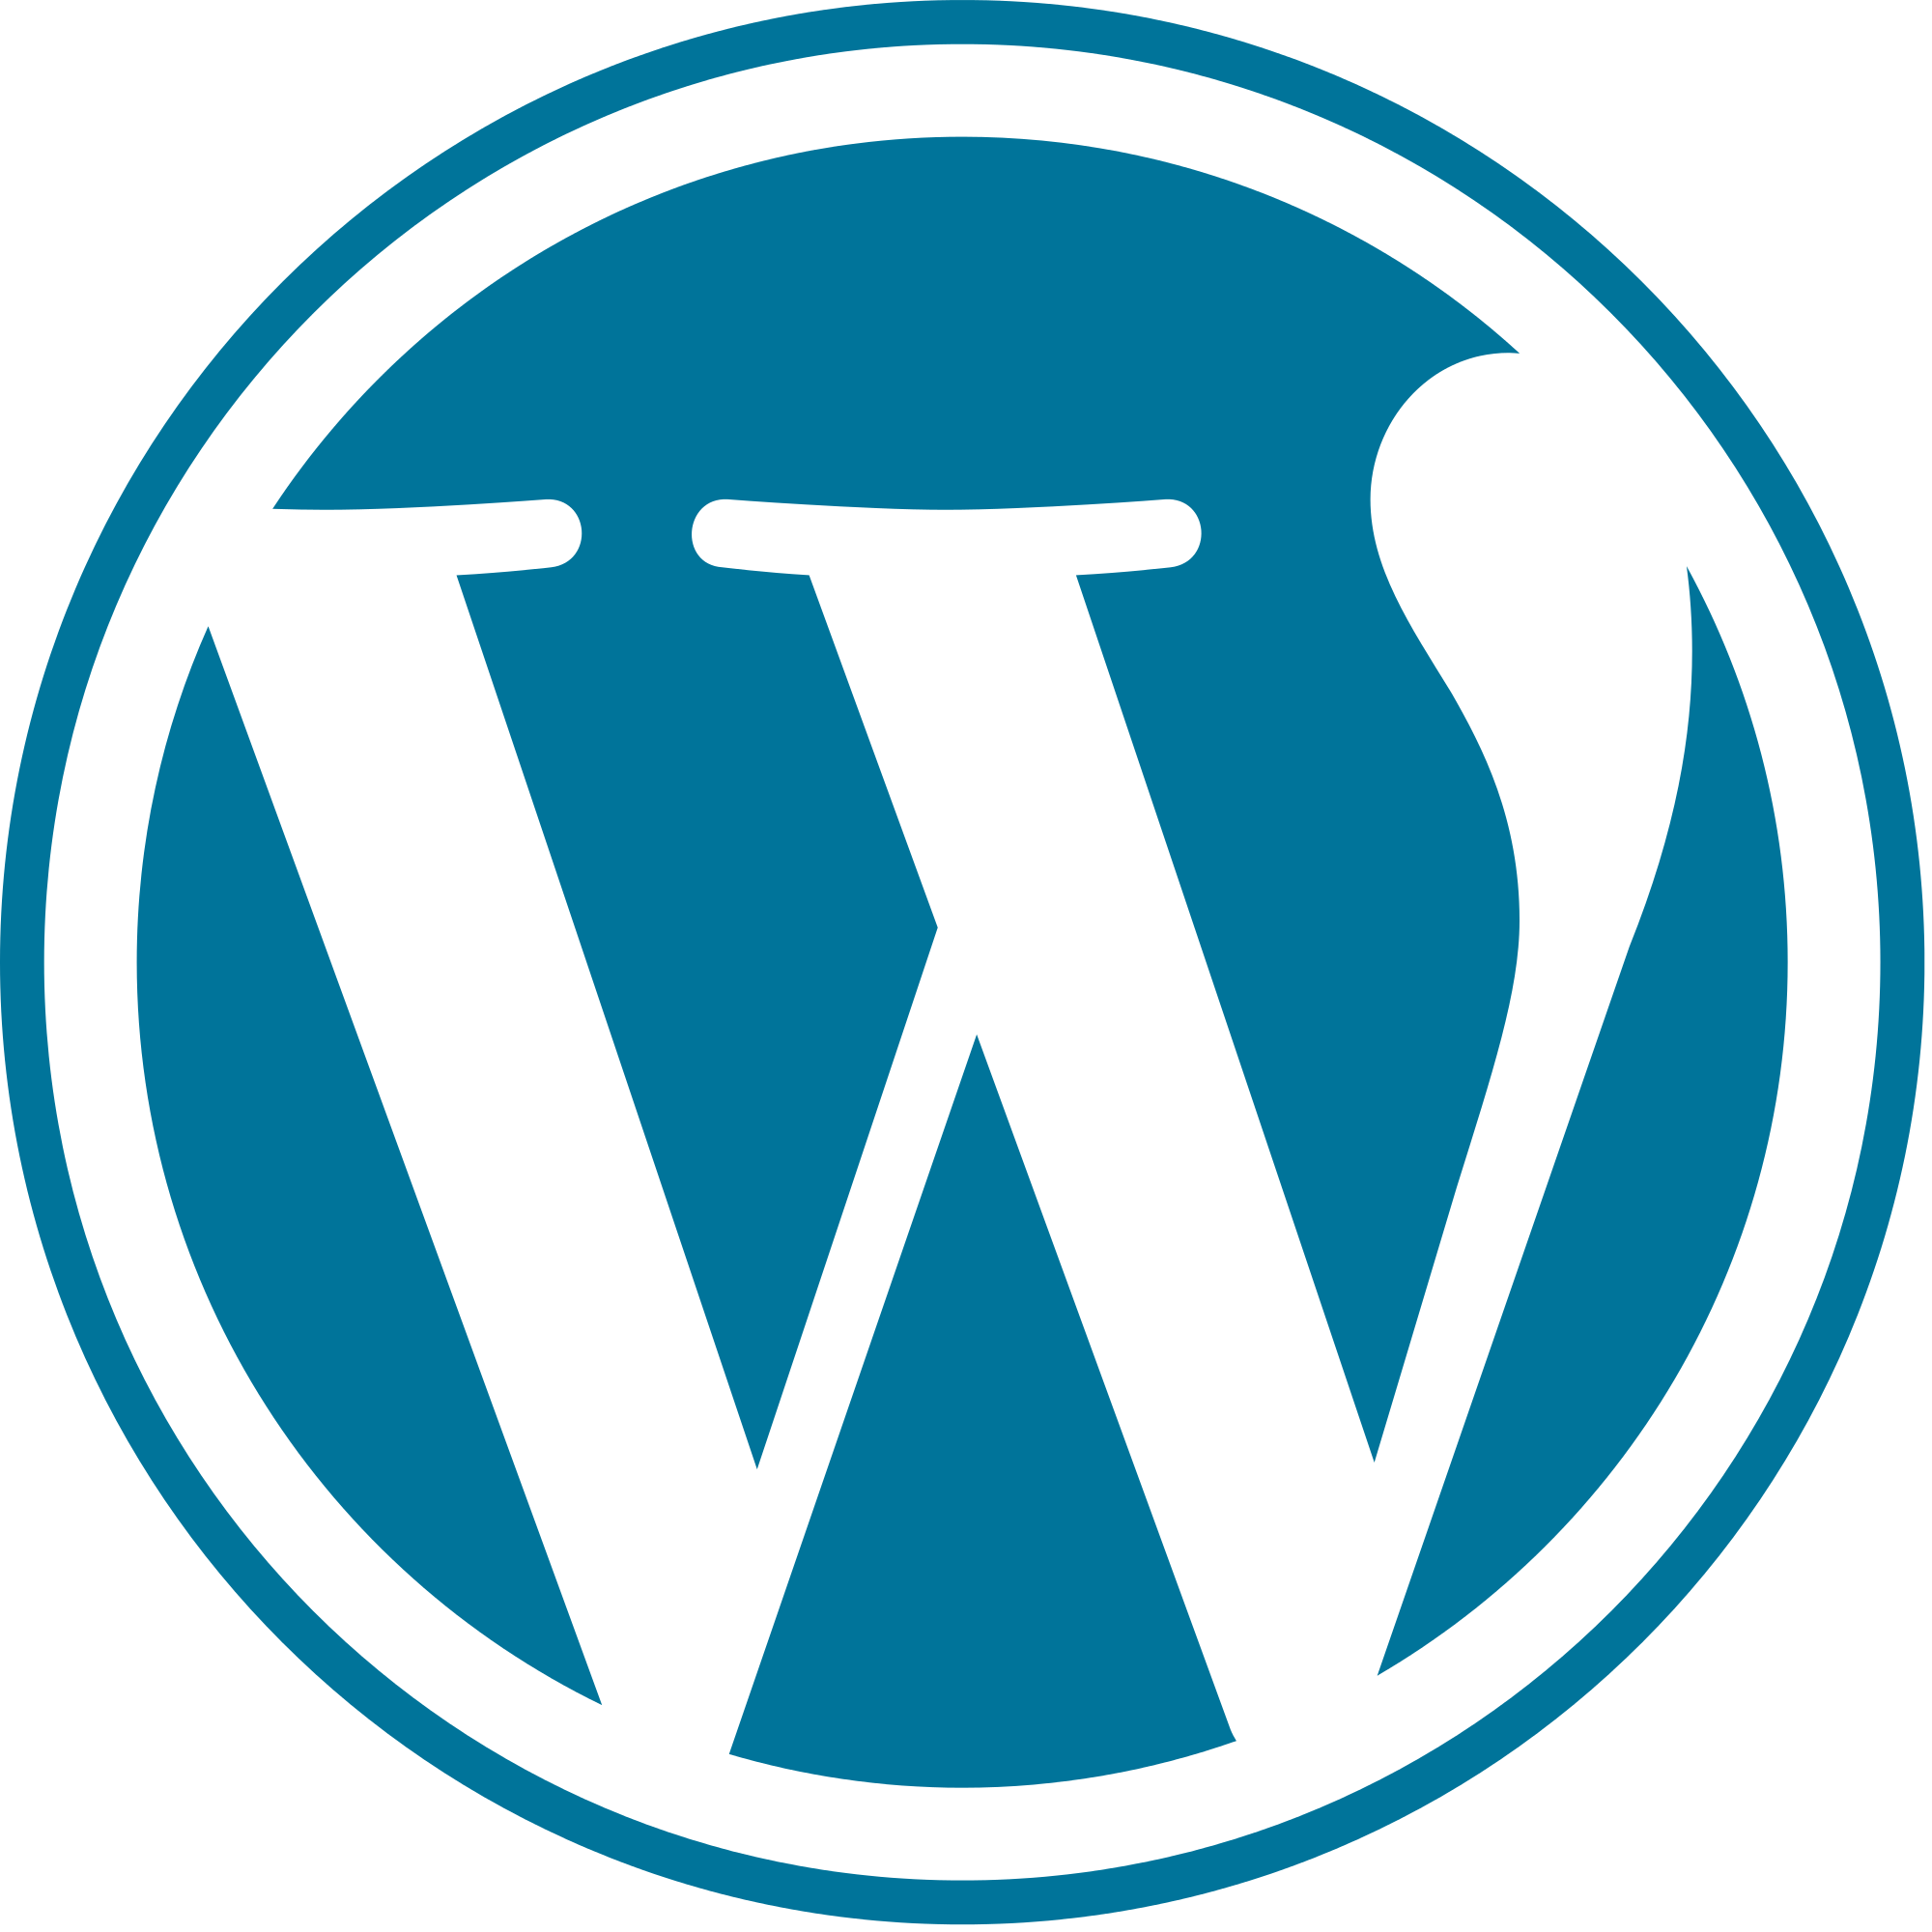 WordPress 4.5.2 Security Release